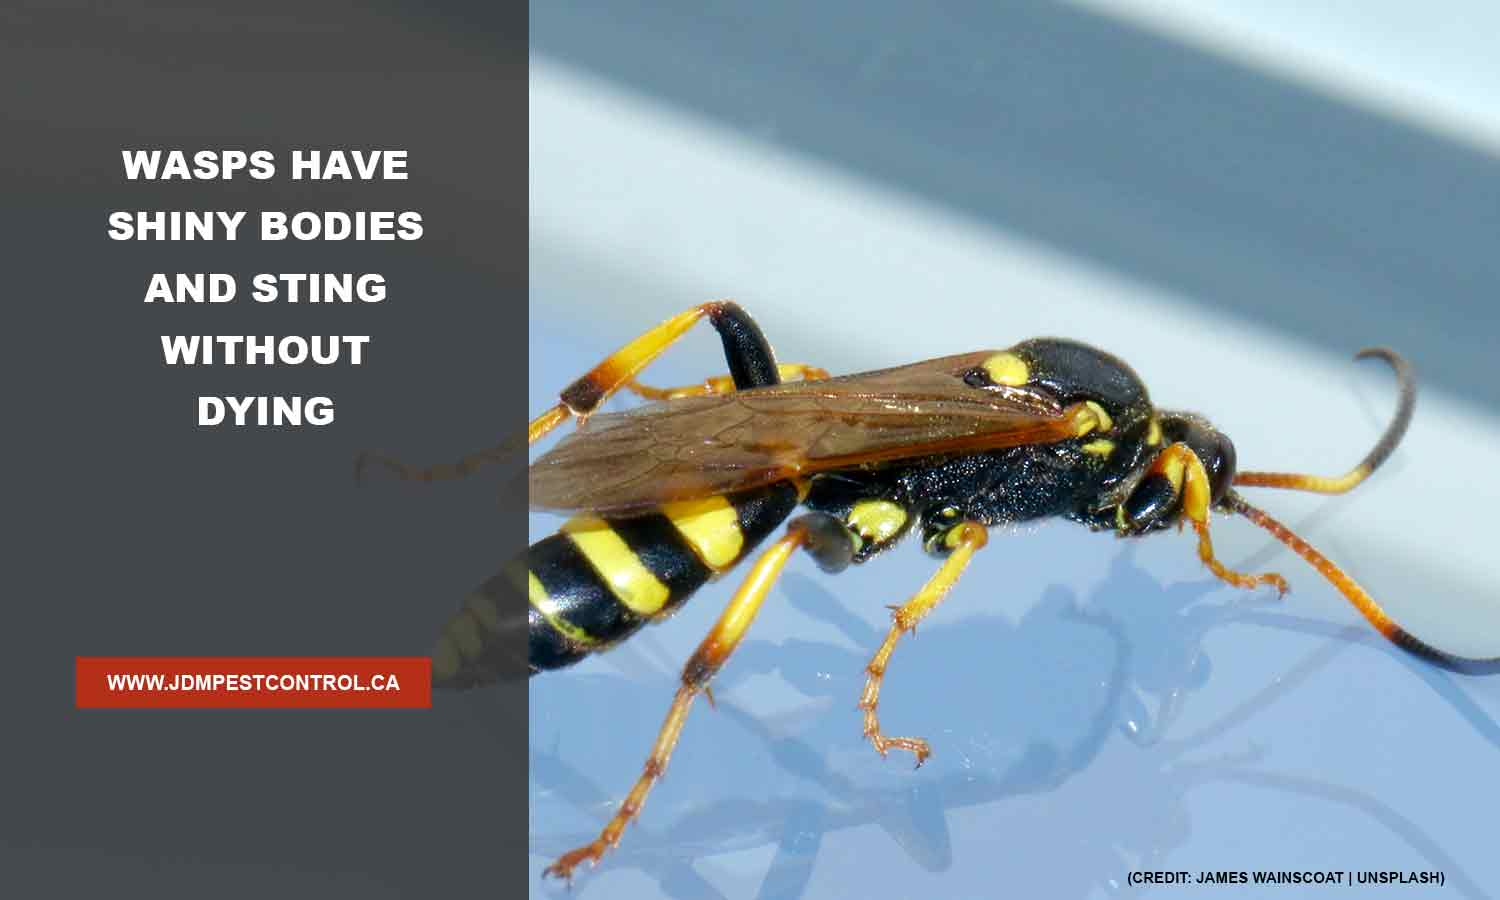 Wasps have shiny bodies and sting without dying